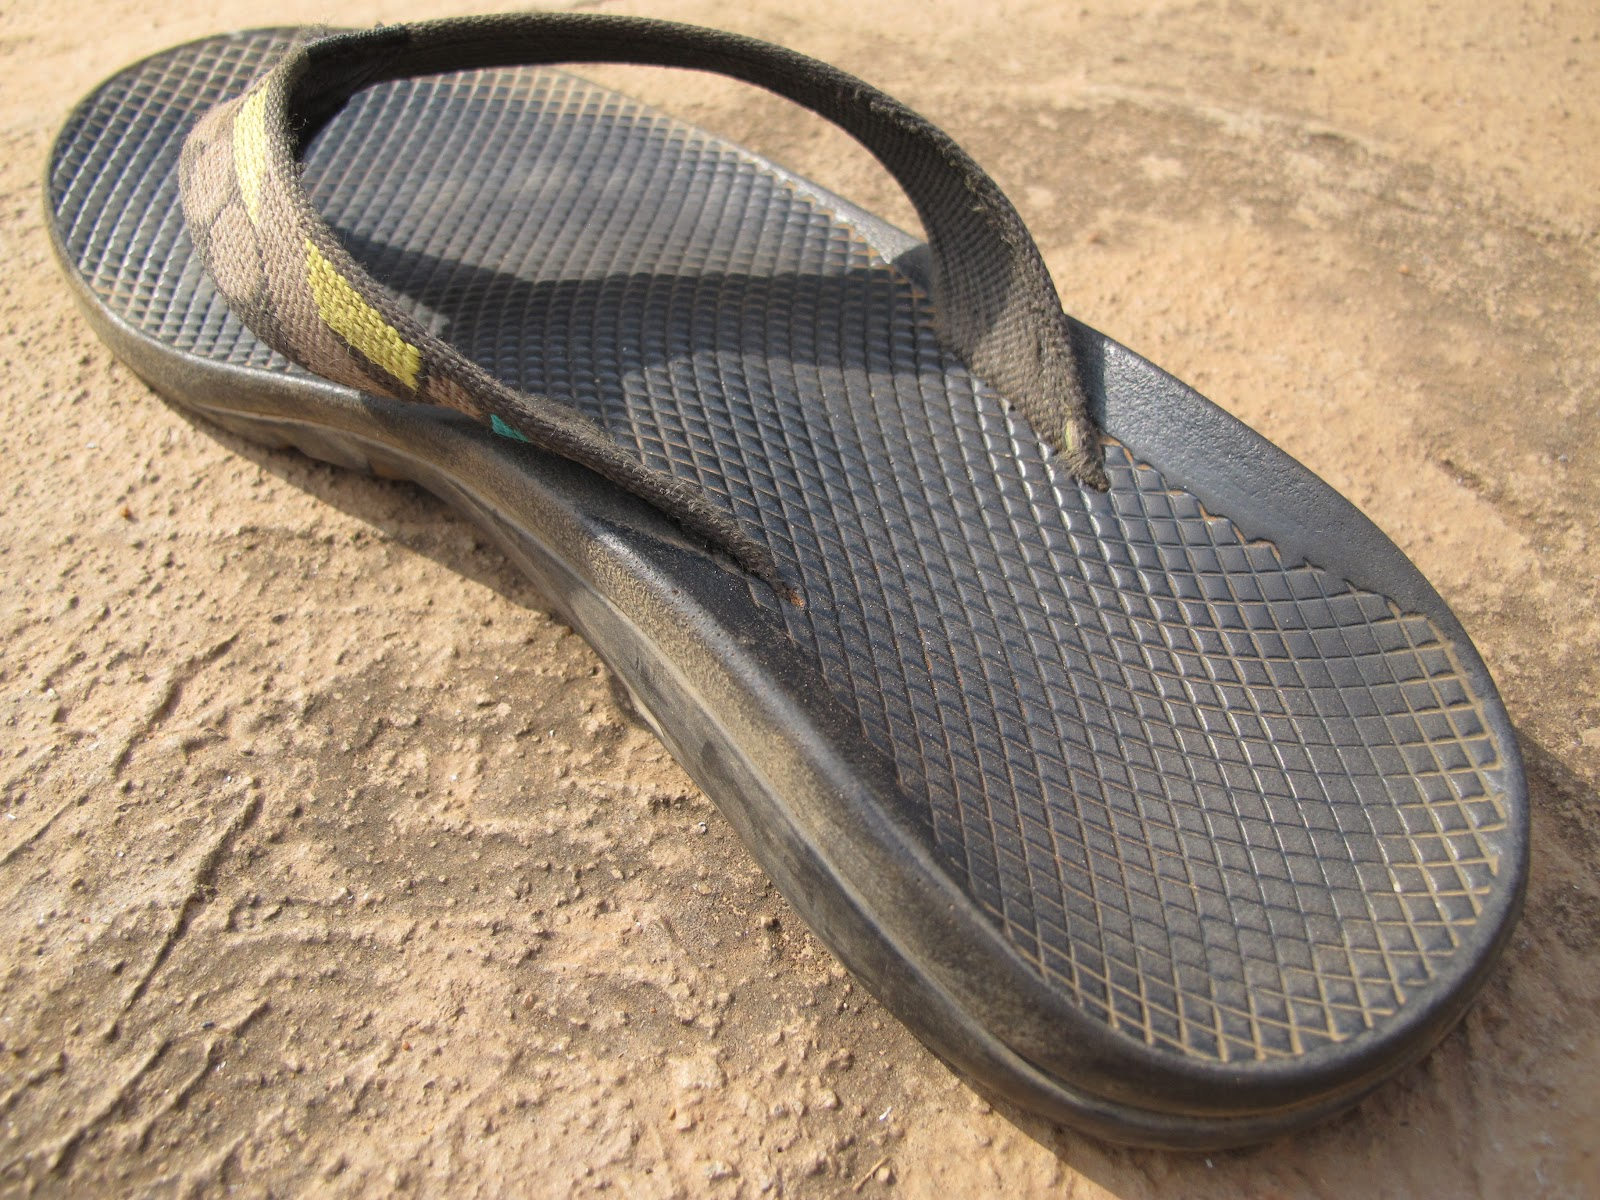 d229b681c3a1 I started wearing flip-flops in high school when I saw a buddy of mine  sporting the Fanning Reefs. You know